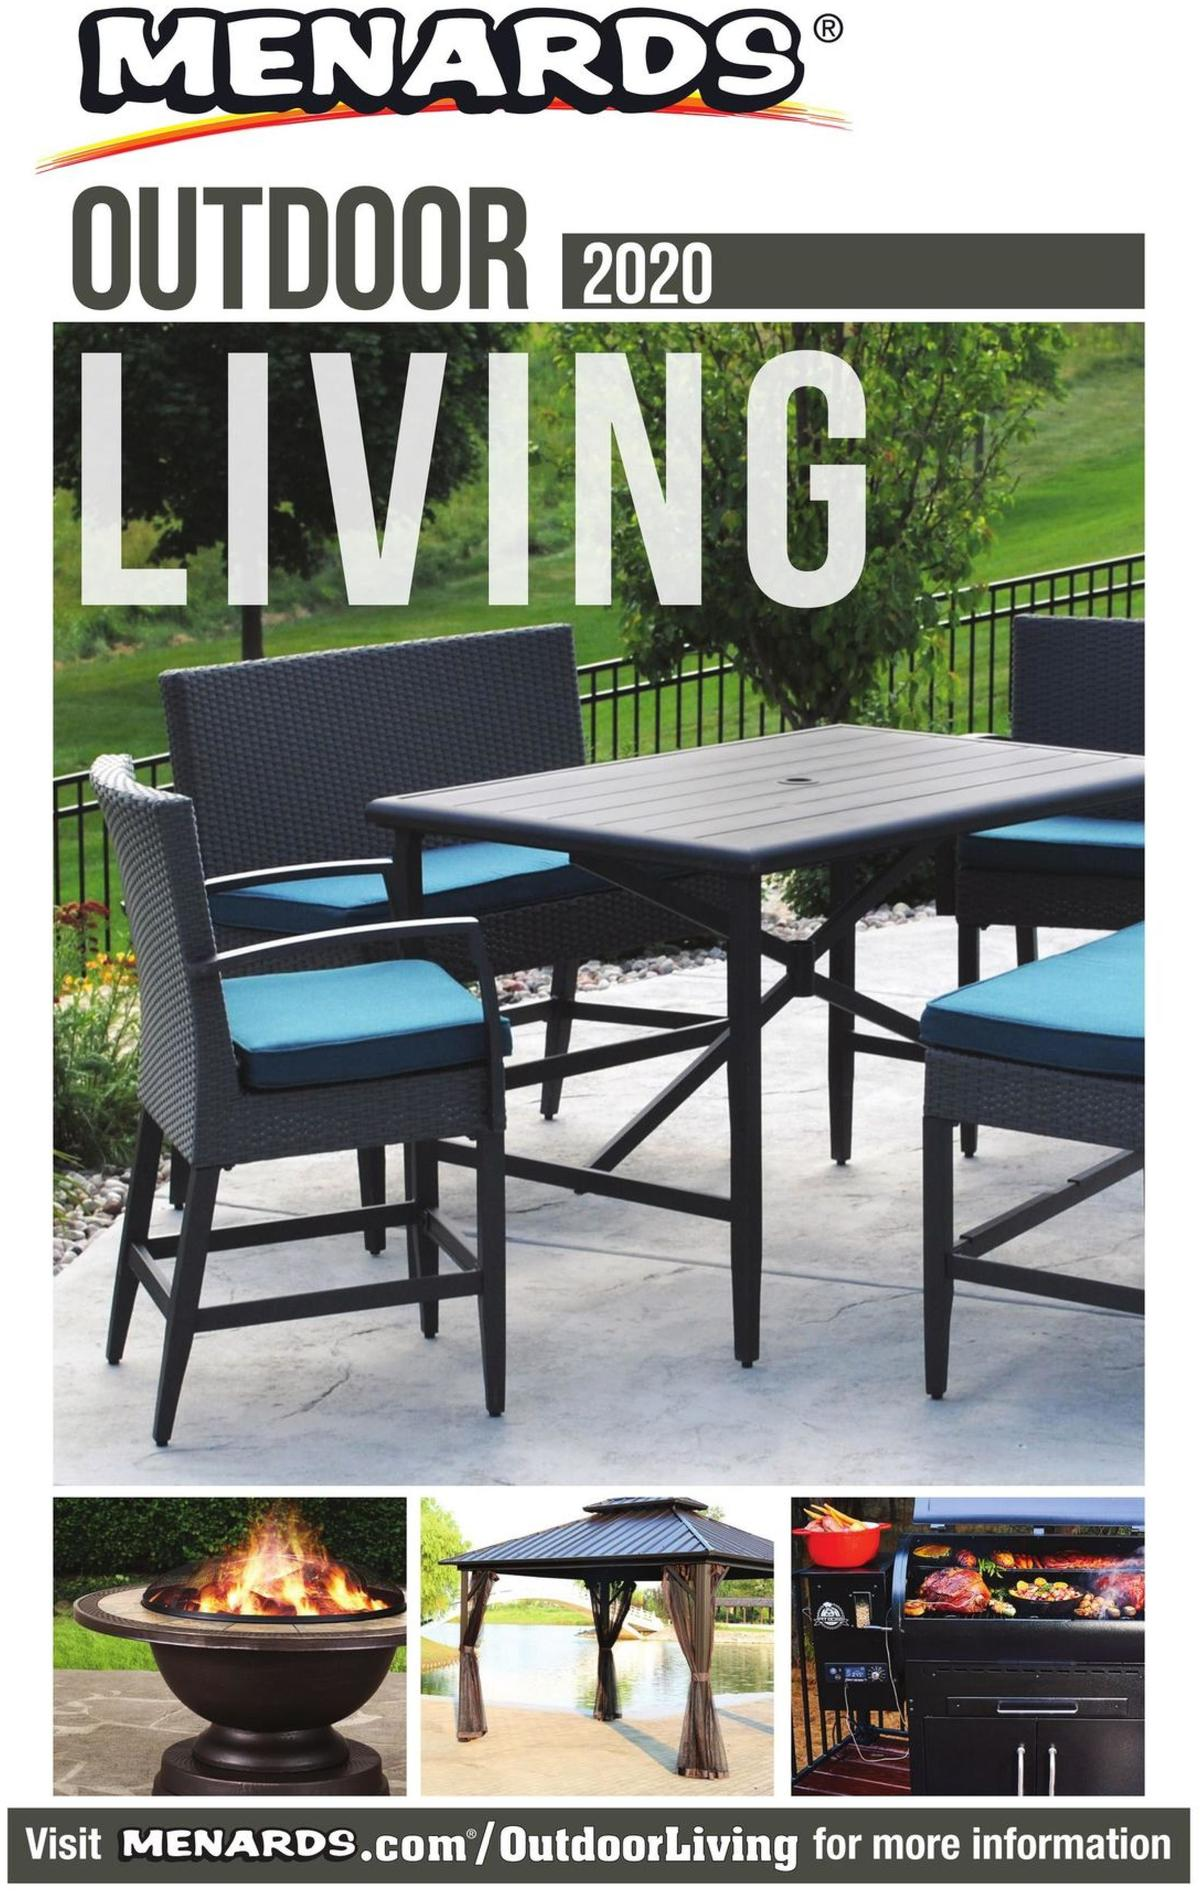 Menards Outdoor Living Catalog Weekly Ad from February 20